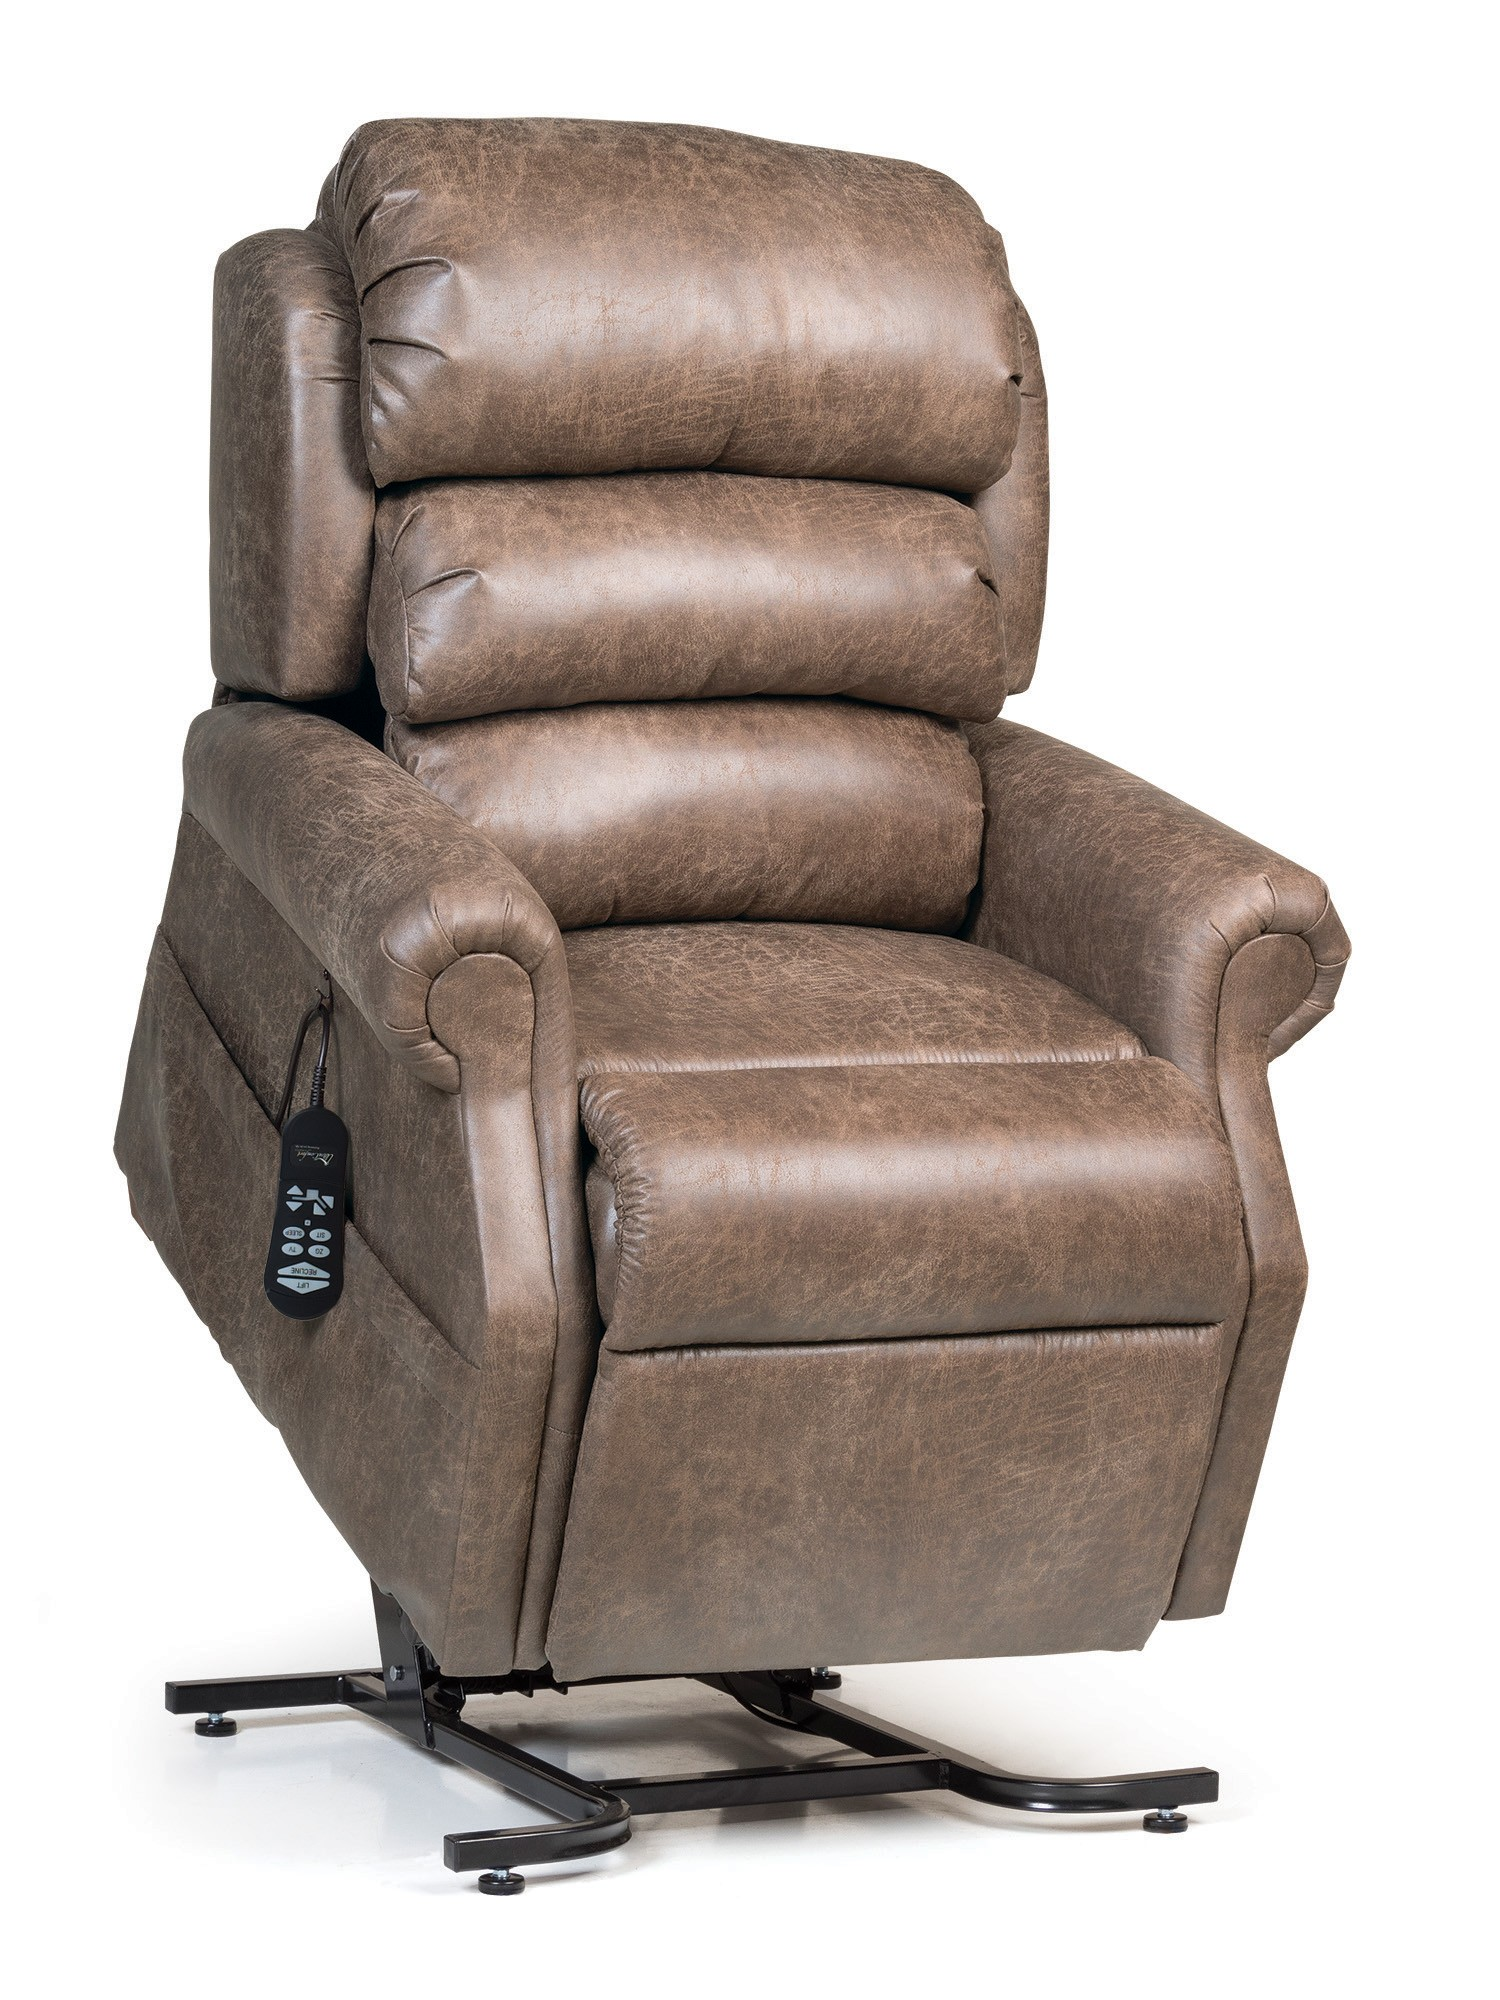 Stellar Lift Chair- Medium size